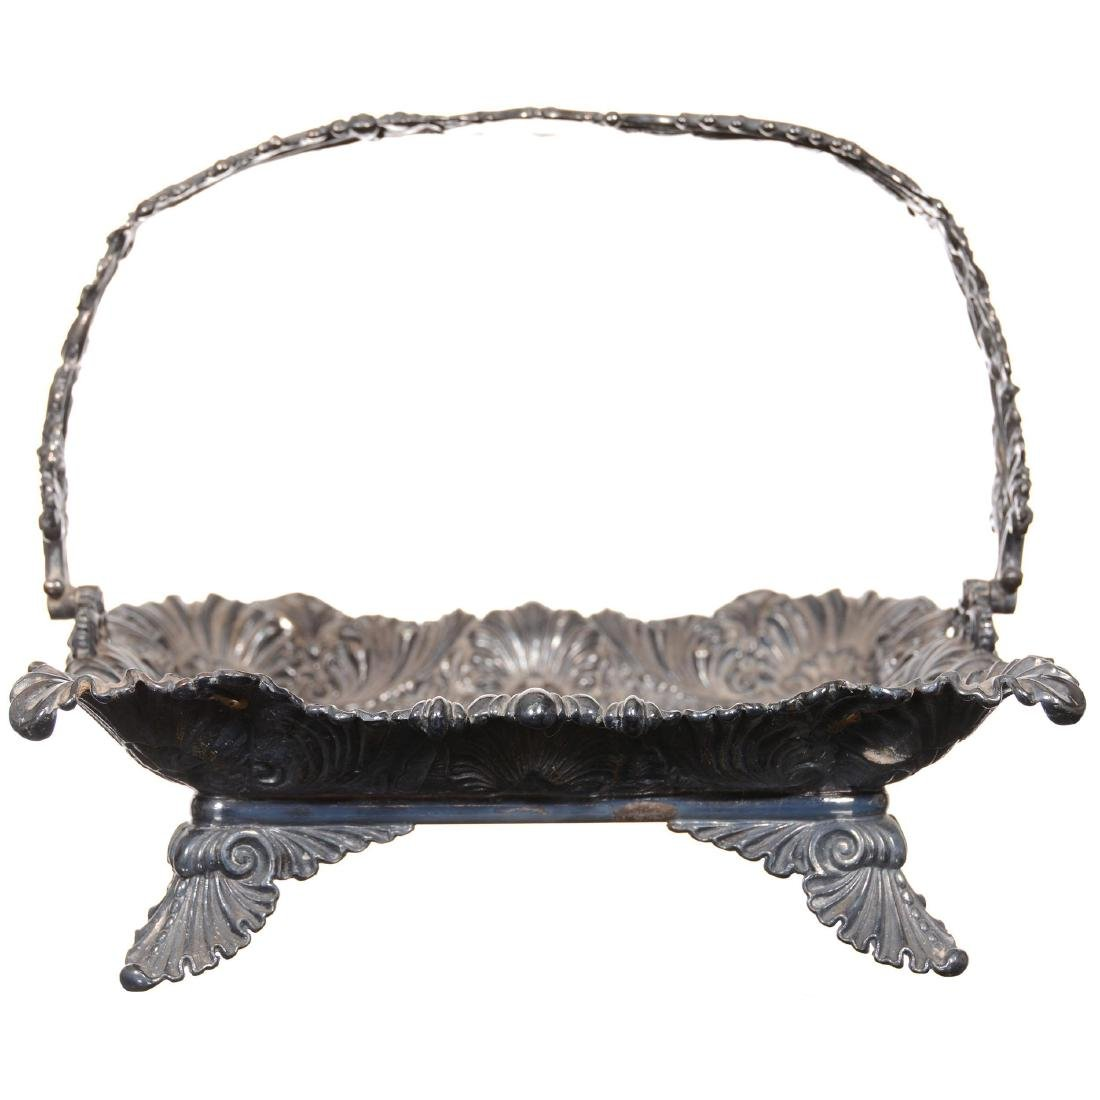 (2) Silverplate Square Shaped Stands - 2